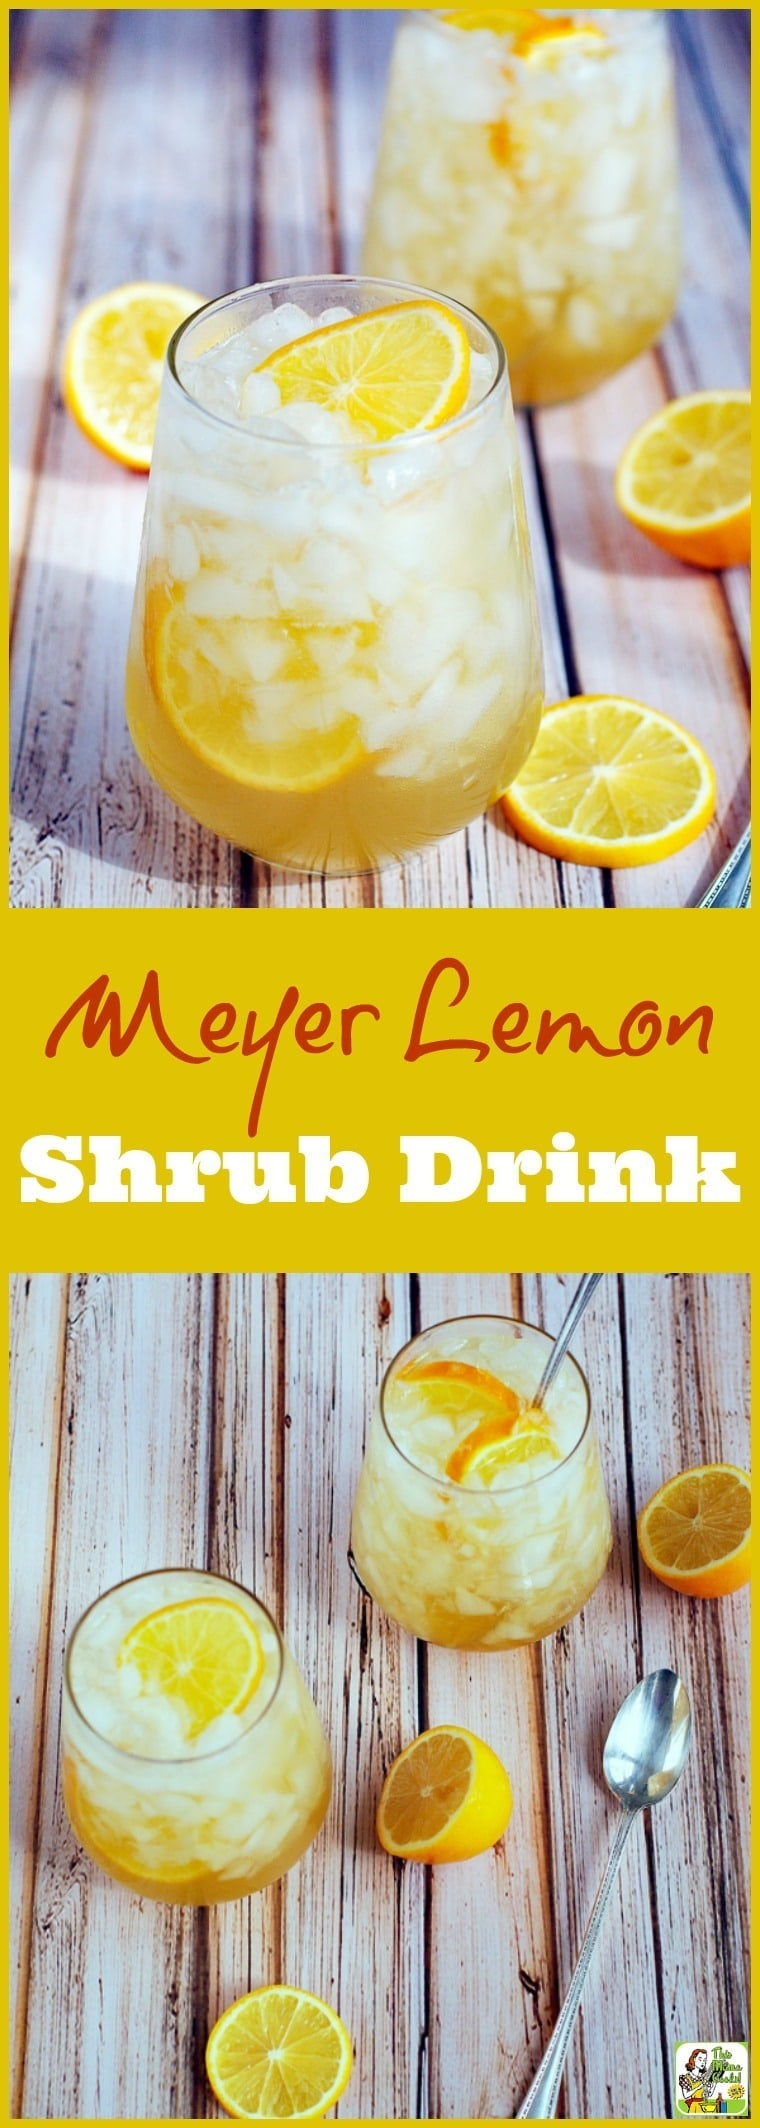 Got lemons? Make this Meyer lemon shrub drink recipe! You\'ll love this sugar free cocktail and mocktail drink mixer recipe. It\'s easy to make, perfect for low calorie, skinny cocktails, too! #cocktails #drinks #drinking #lemons #sugarfree